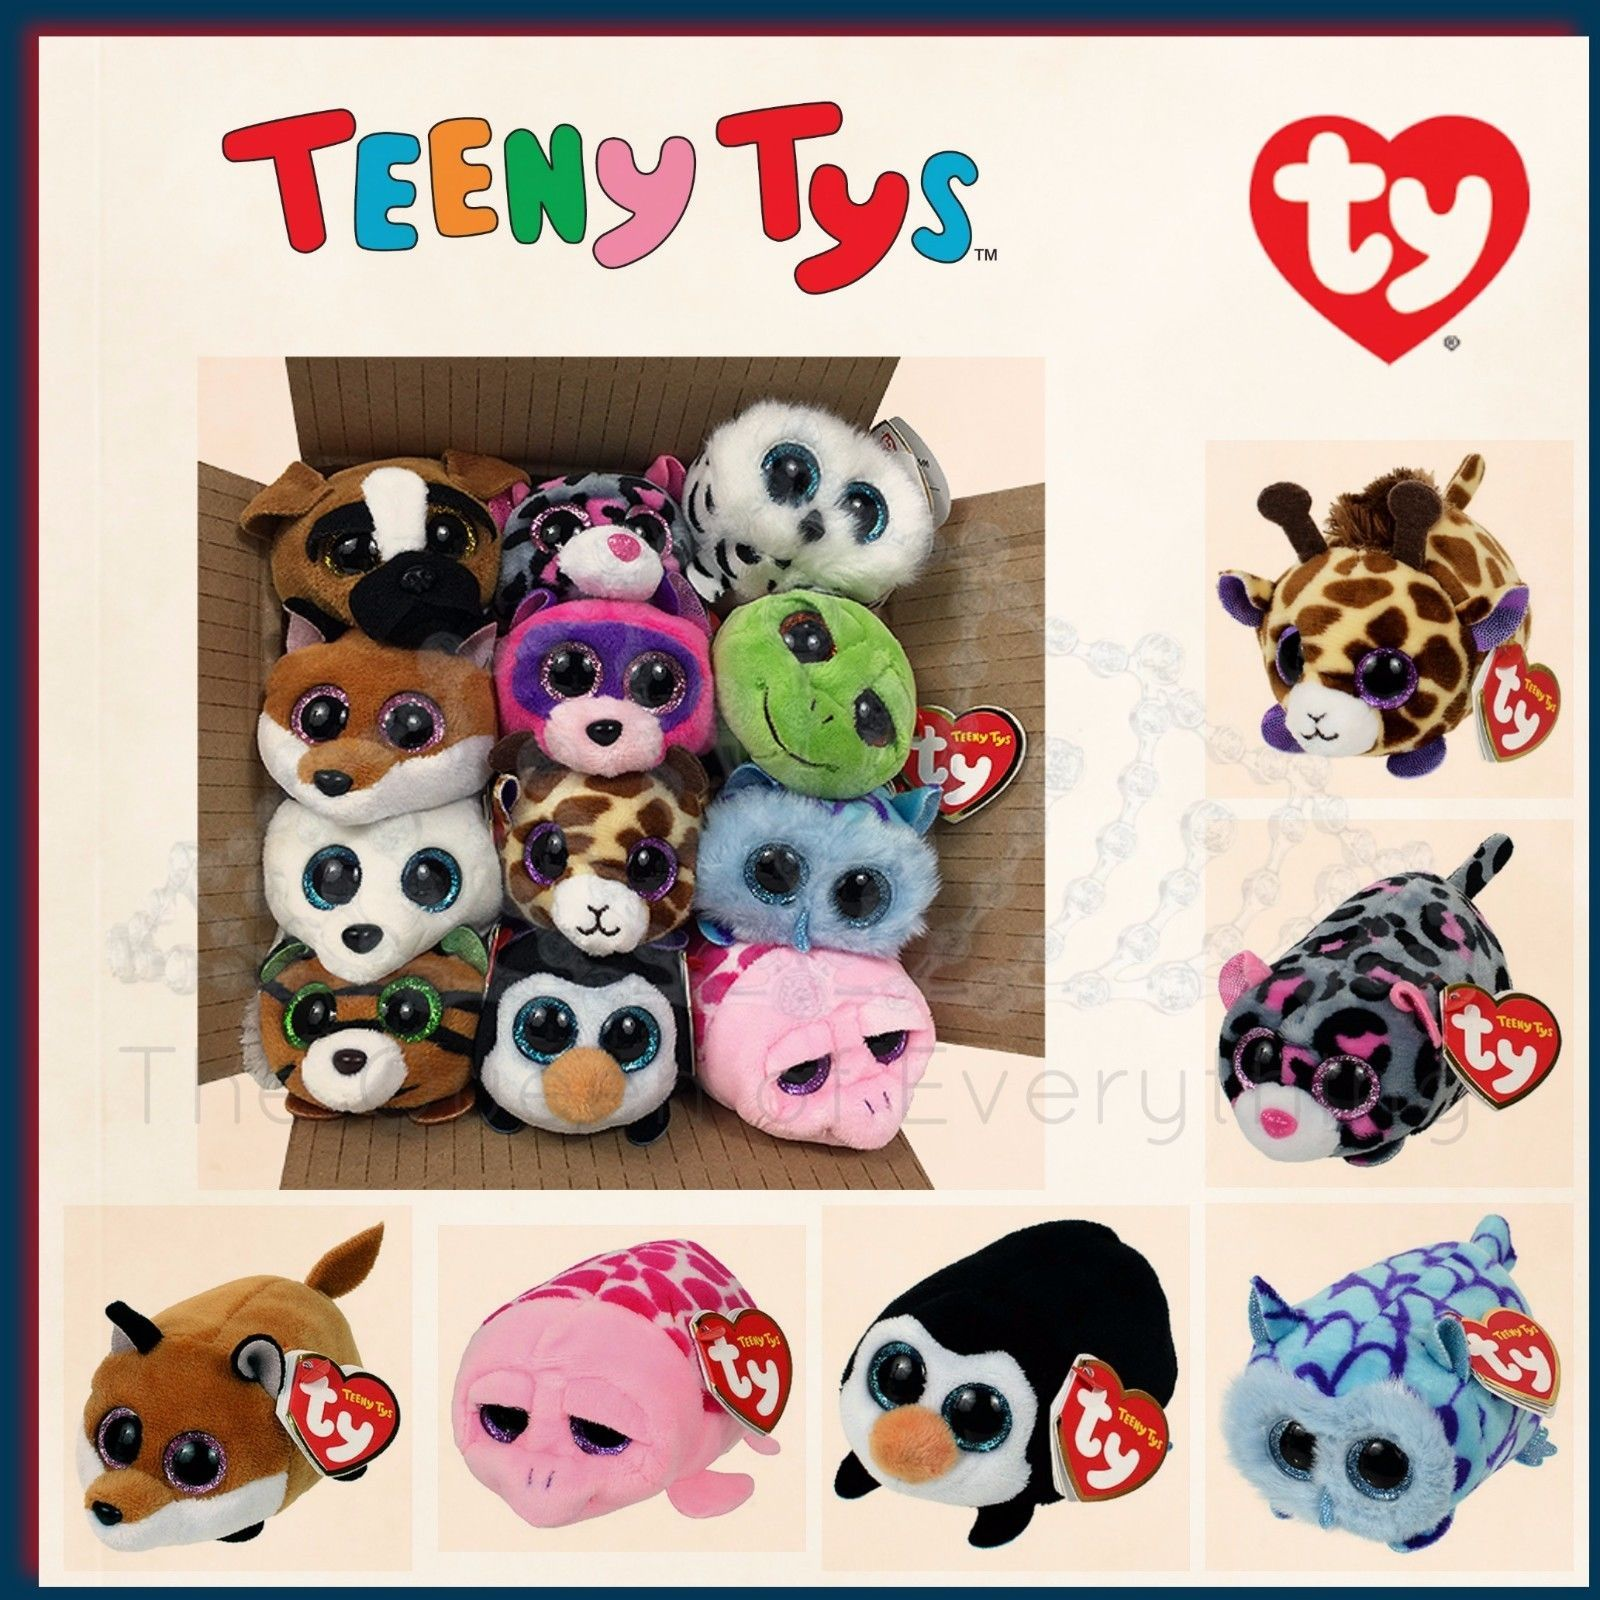 """TY Teeny Tys 3"""" Stackable Screen Cleaner Plush New Release 2016 USA Seller in Home & Garden, Kids & Teens at Home, Other Kids' & Teens' Items 